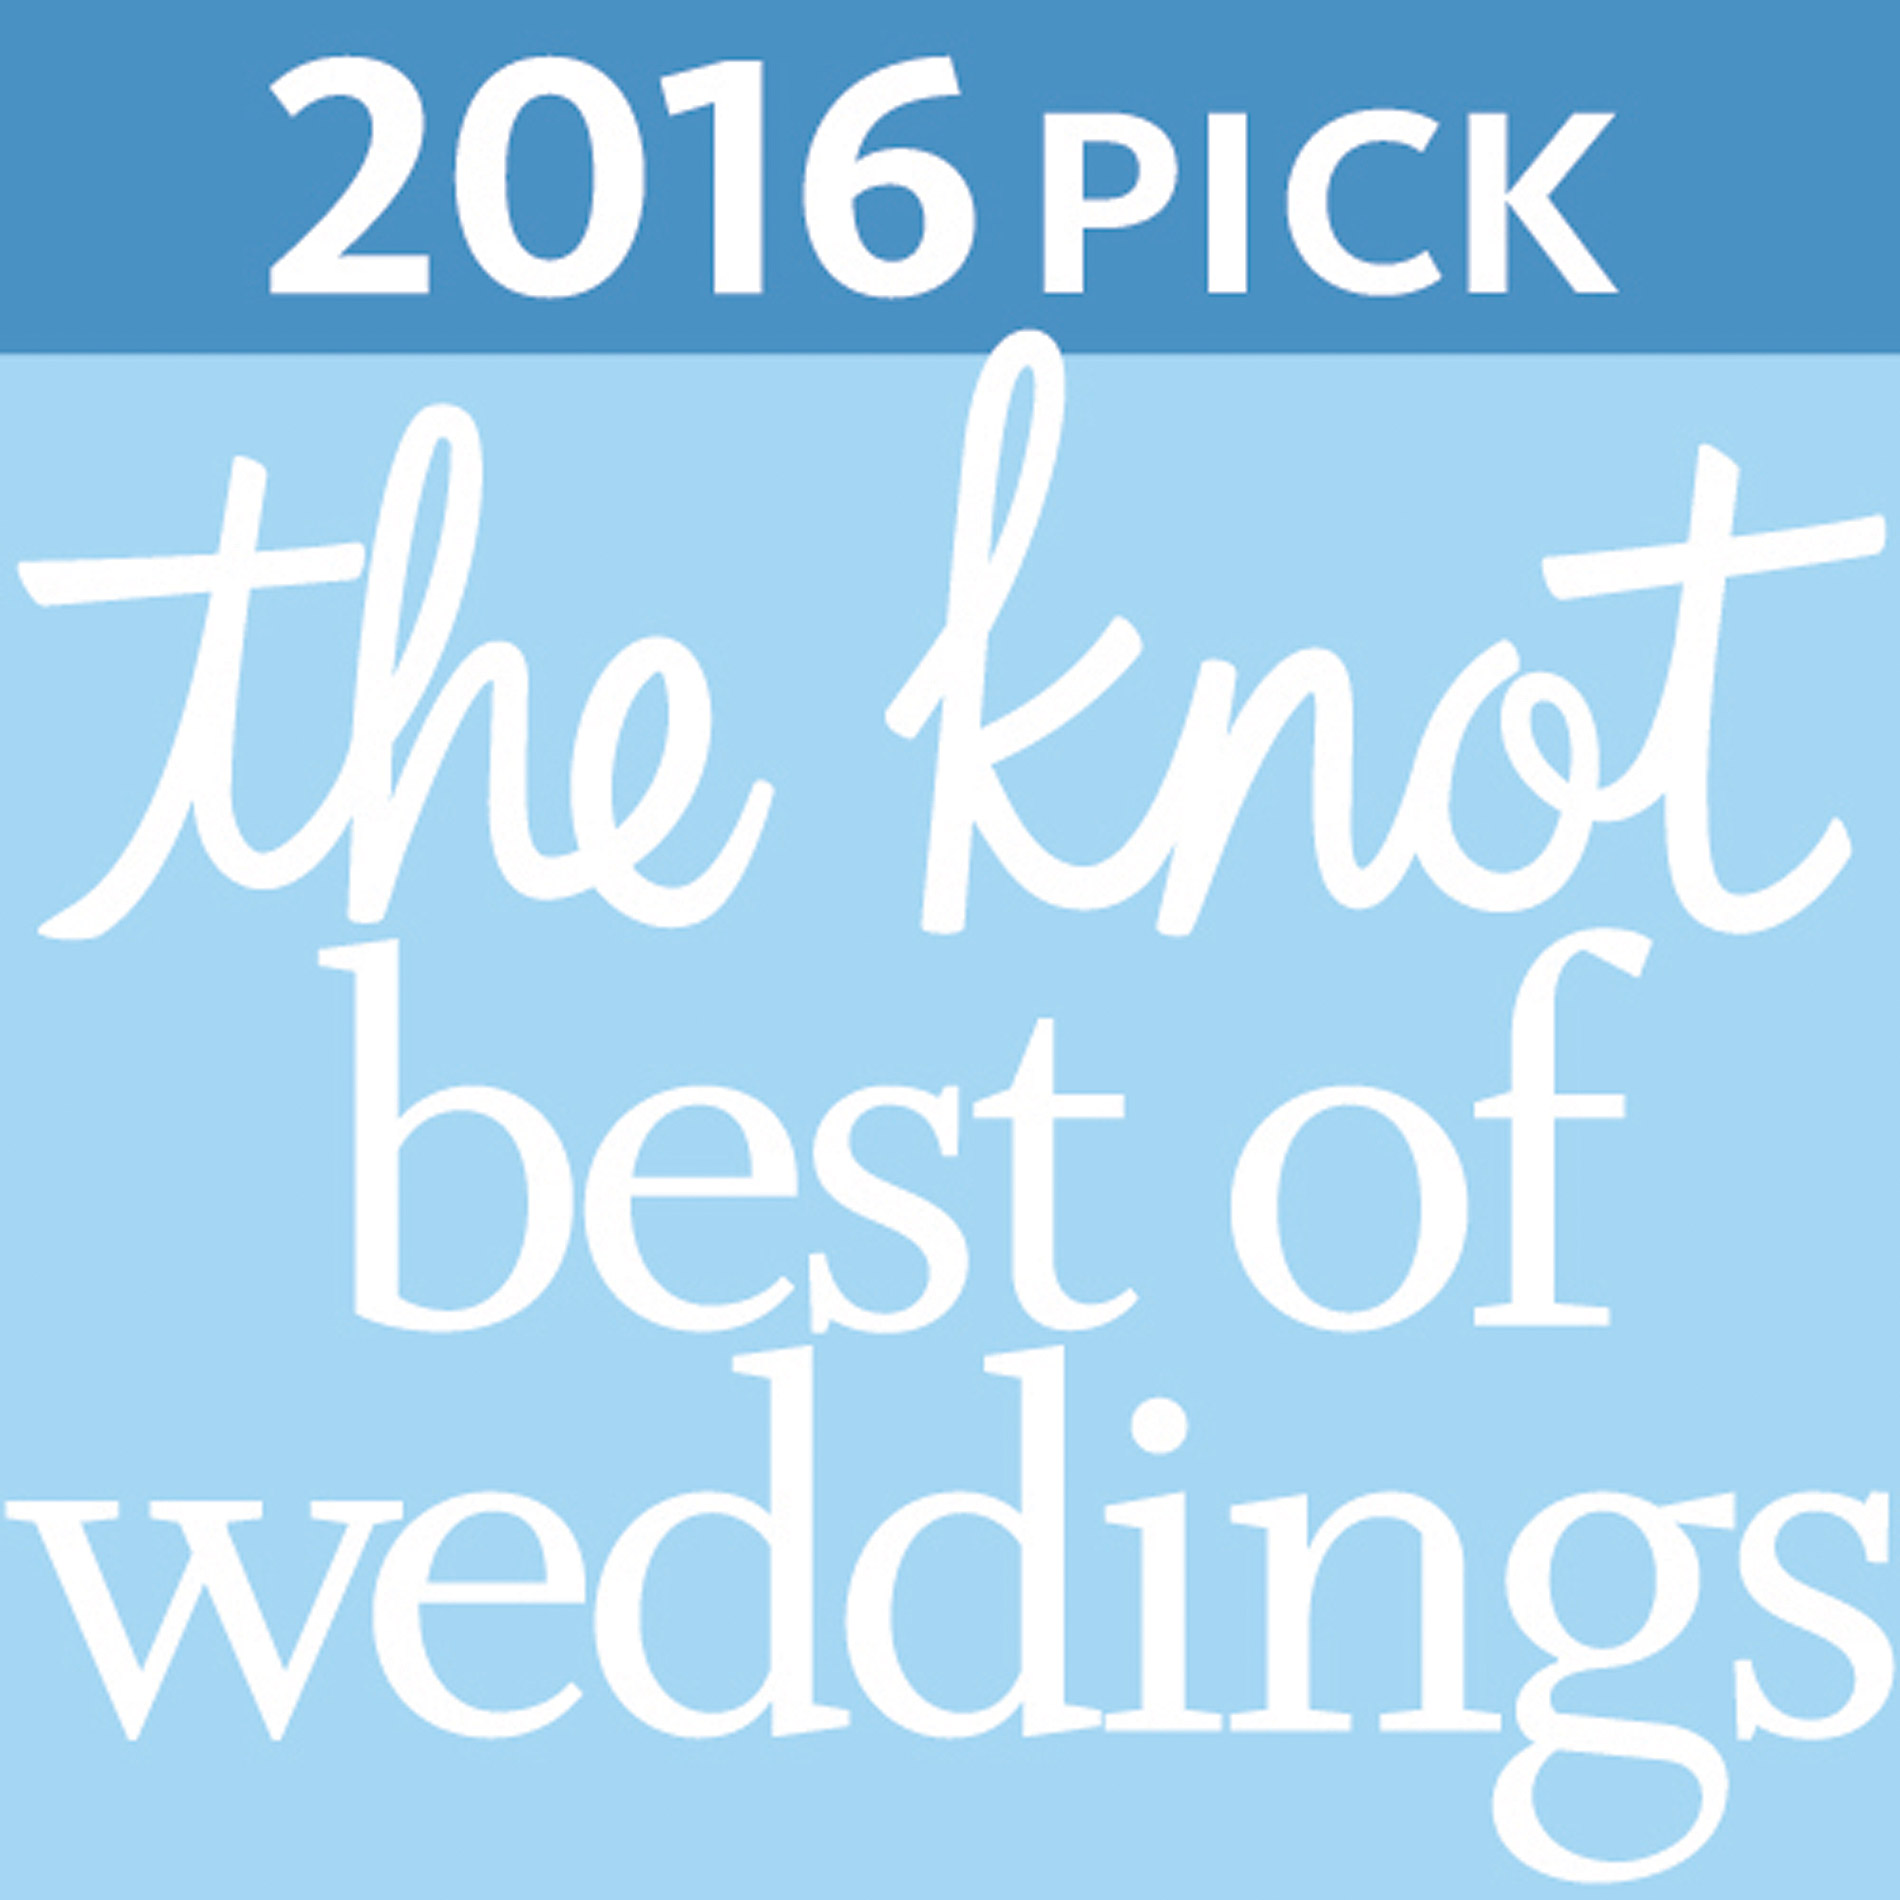 The Knot Best of Weddings 2016.